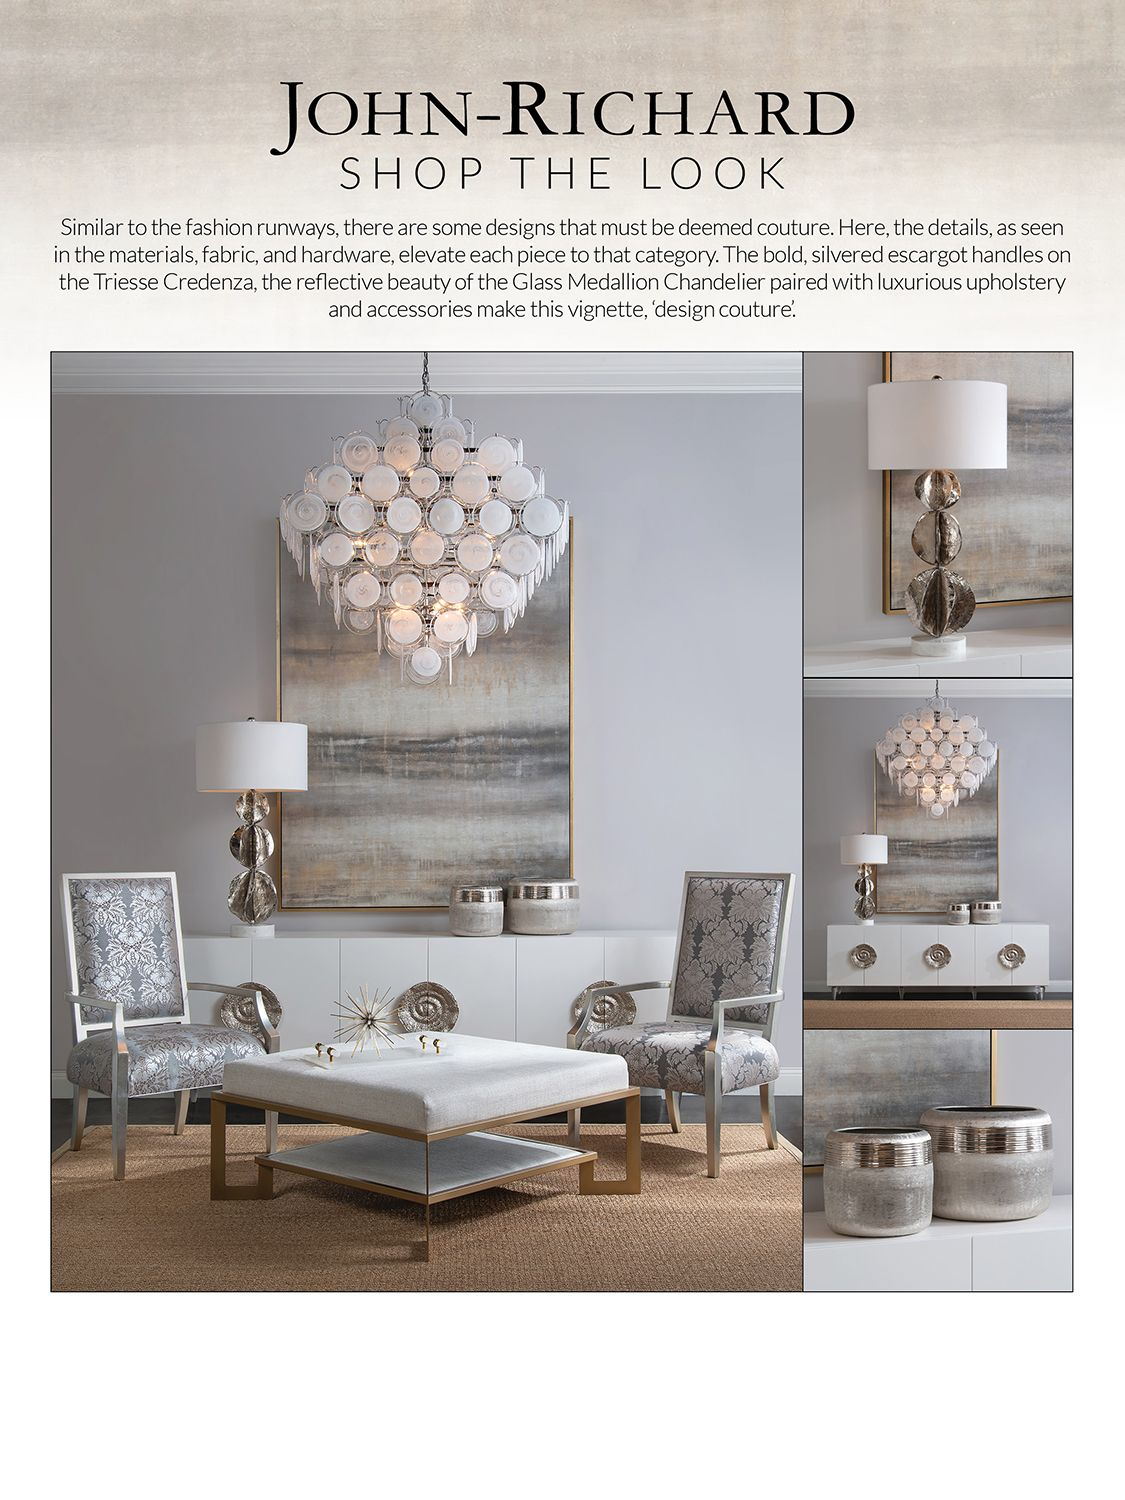 SHOP THE LOOK - Triesse Credenza